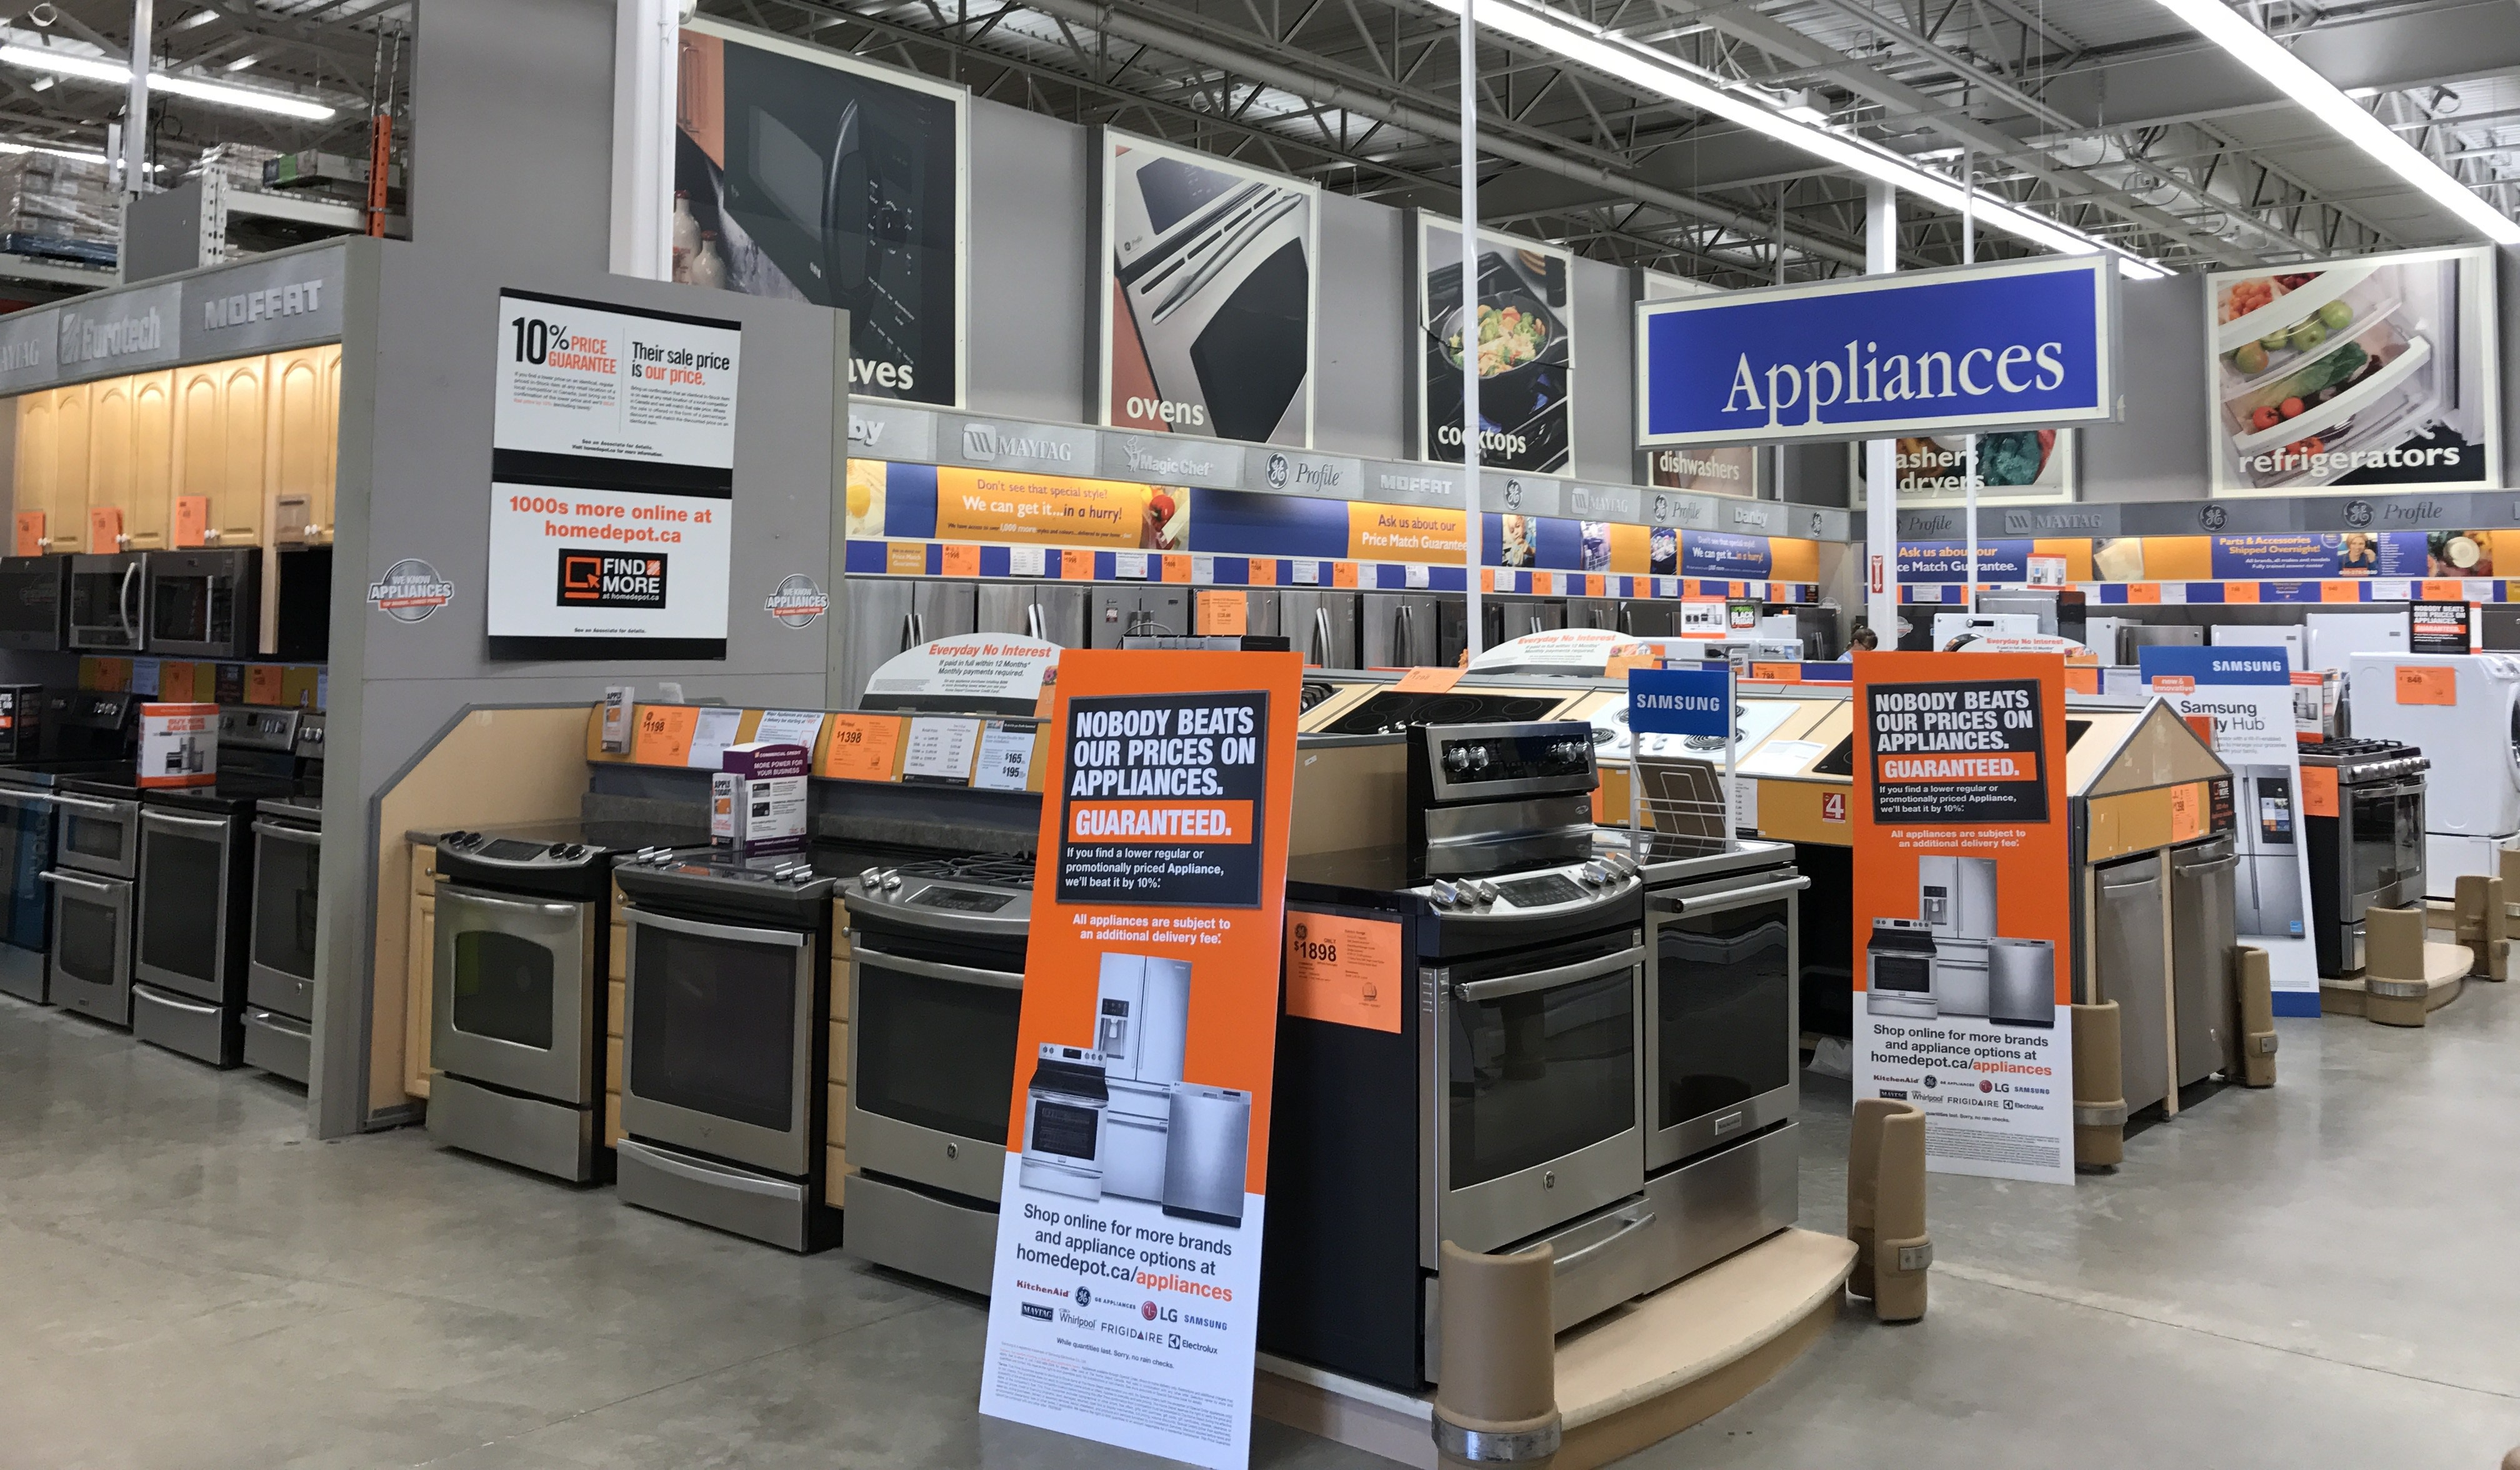 Home Depot store departments can see the same inventory as web customers